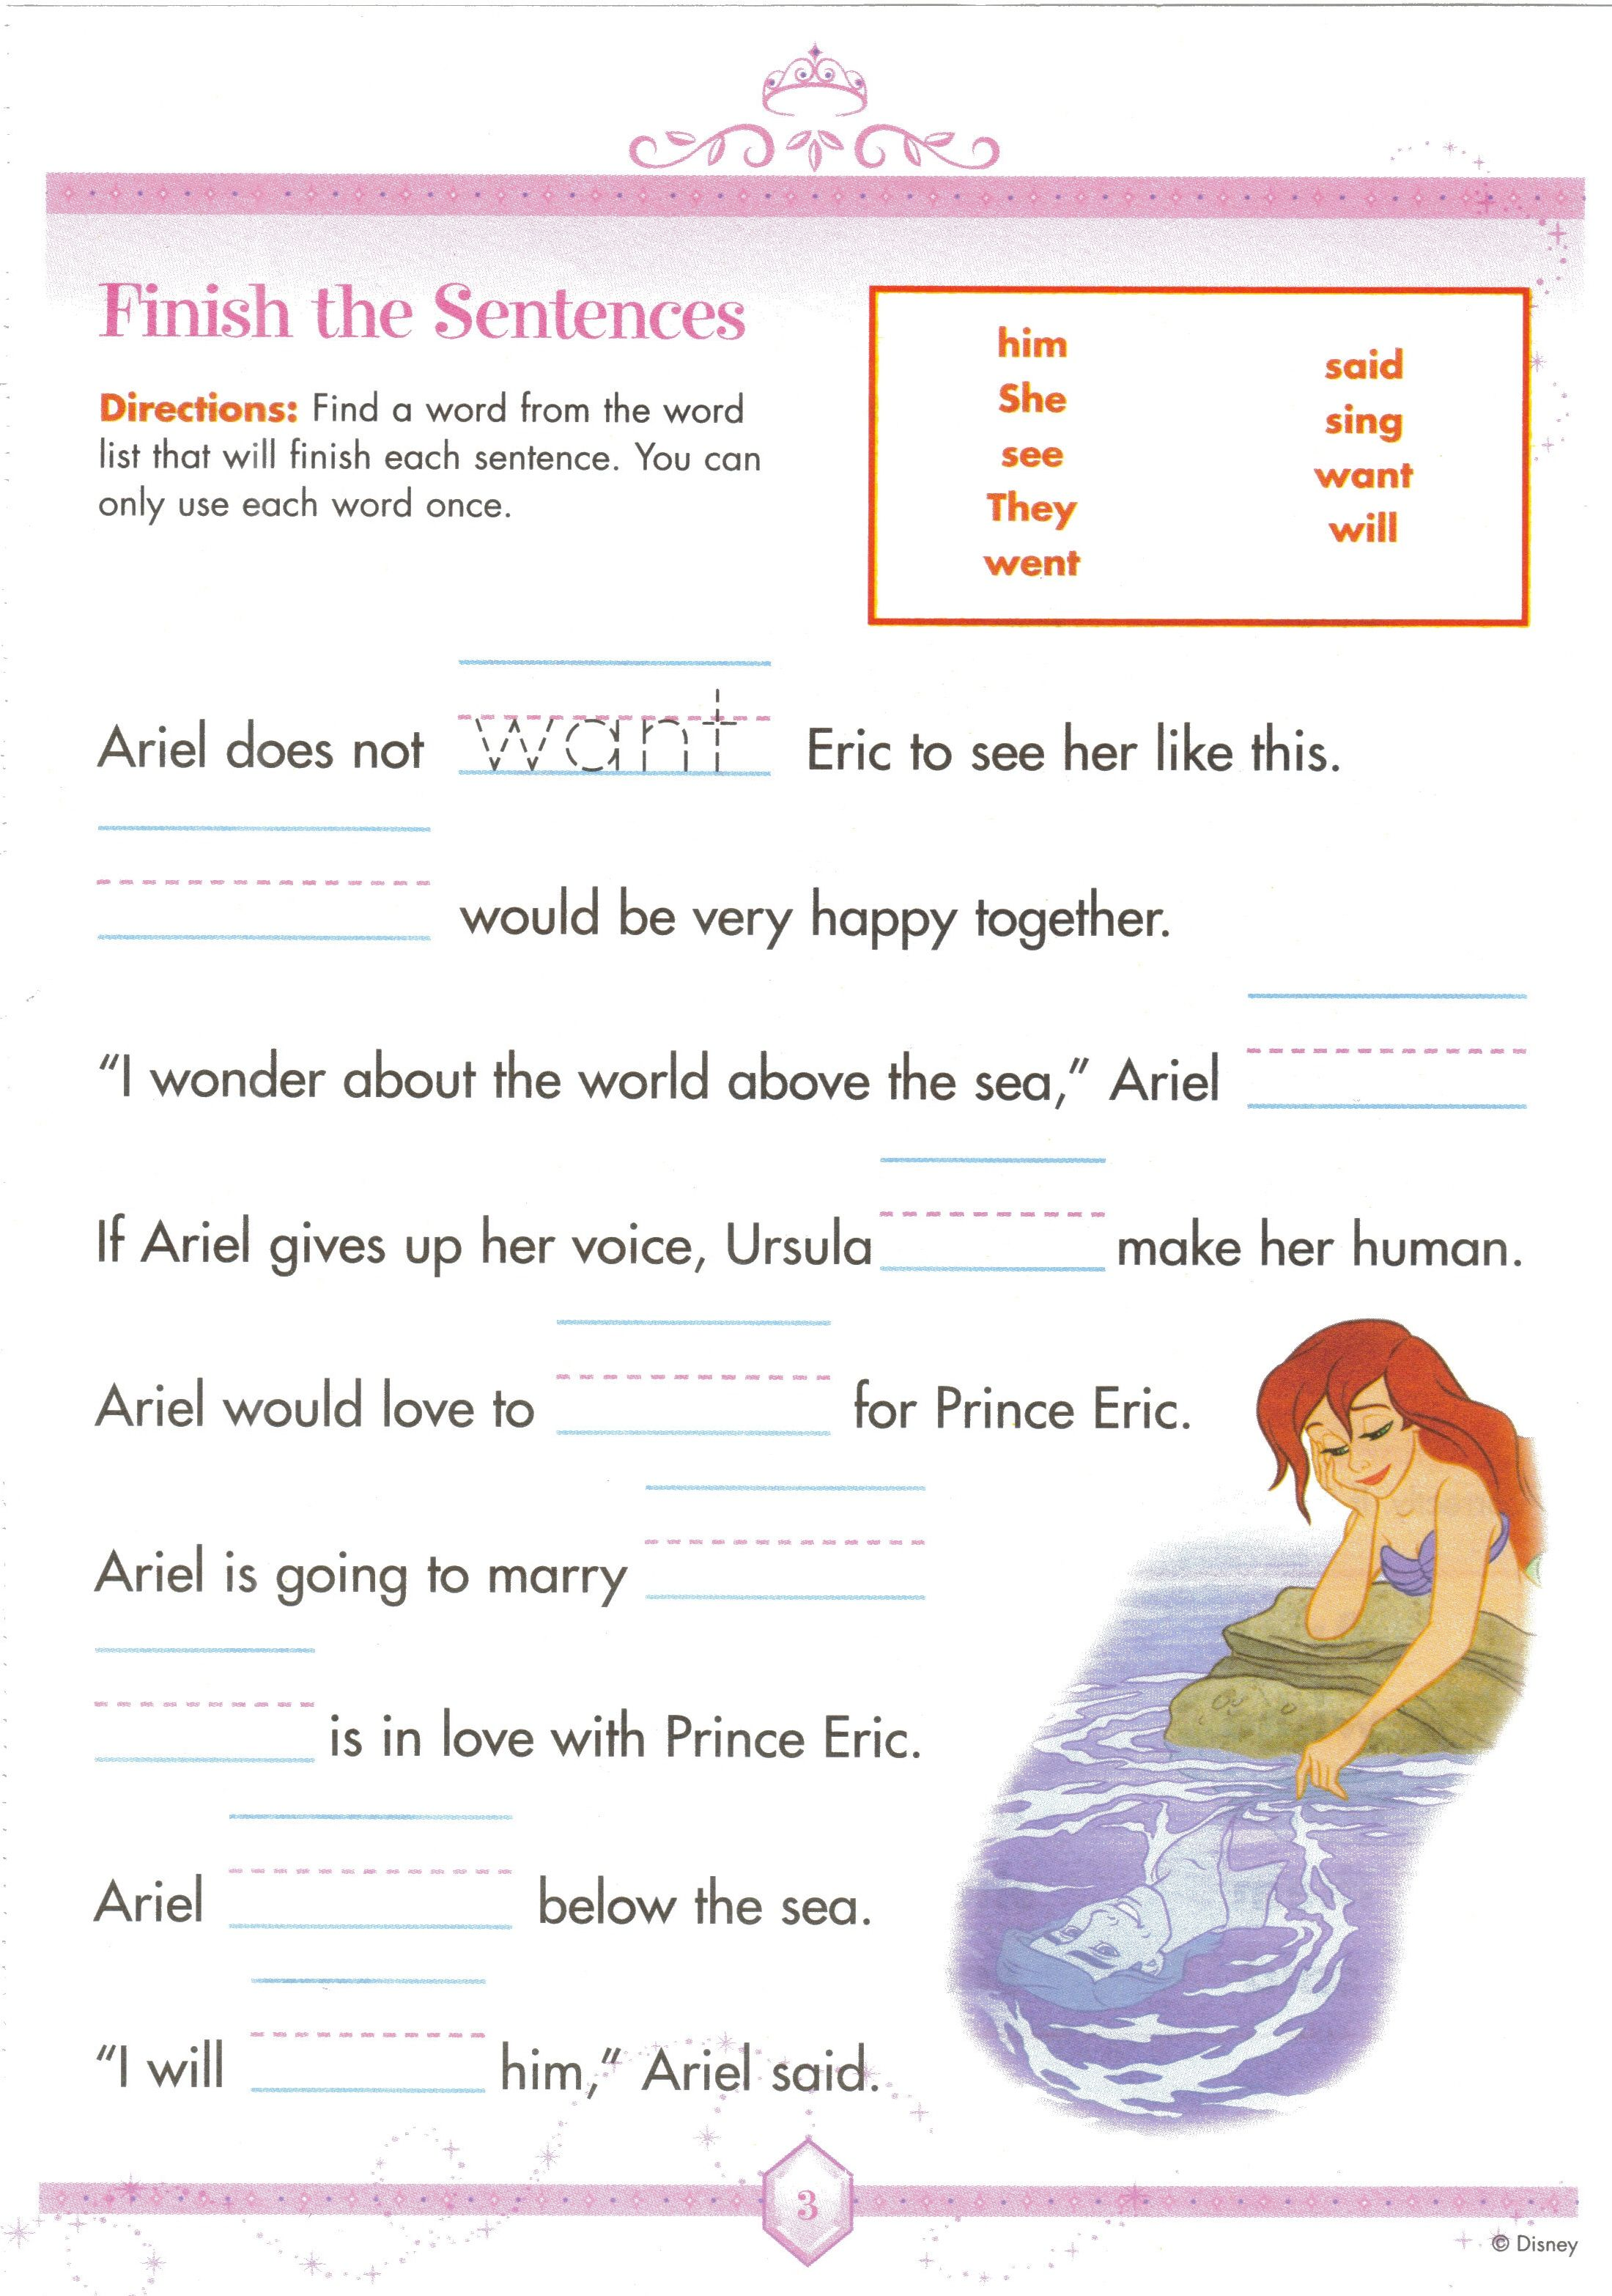 Weirdmailus  Wonderful  Images About Worksheets On Pinterest  Fun Facts For Kids  With Heavenly  Images About Worksheets On Pinterest  Fun Facts For Kids Earth Day Worksheets And Jungles With Enchanting Worksheet English Grammar Also Elementary Addition Worksheets In Addition Minute Maths Worksheets And French Time Worksheet As Well As Ks Multiplication Worksheets Additionally Free Esl Reading Comprehension Worksheets From Pinterestcom With Weirdmailus  Heavenly  Images About Worksheets On Pinterest  Fun Facts For Kids  With Enchanting  Images About Worksheets On Pinterest  Fun Facts For Kids Earth Day Worksheets And Jungles And Wonderful Worksheet English Grammar Also Elementary Addition Worksheets In Addition Minute Maths Worksheets From Pinterestcom